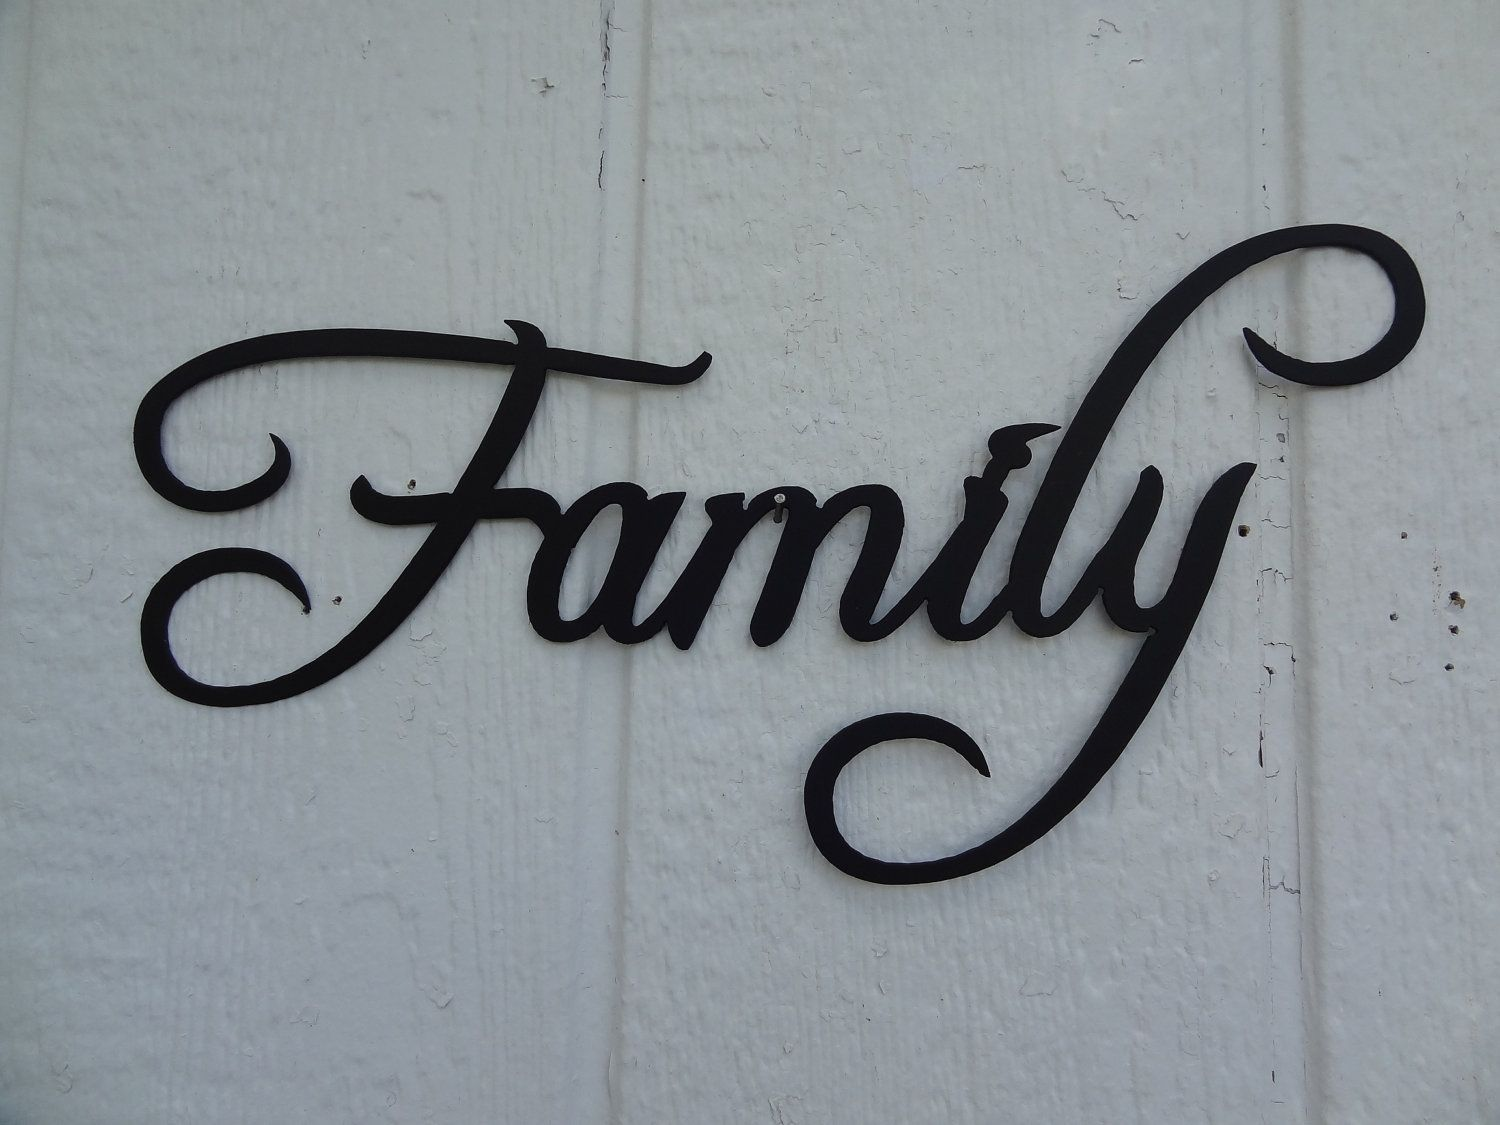 Metal Family Wall Decor Hand Made Family Word Decorative Metal Wall Art Home Decorsay